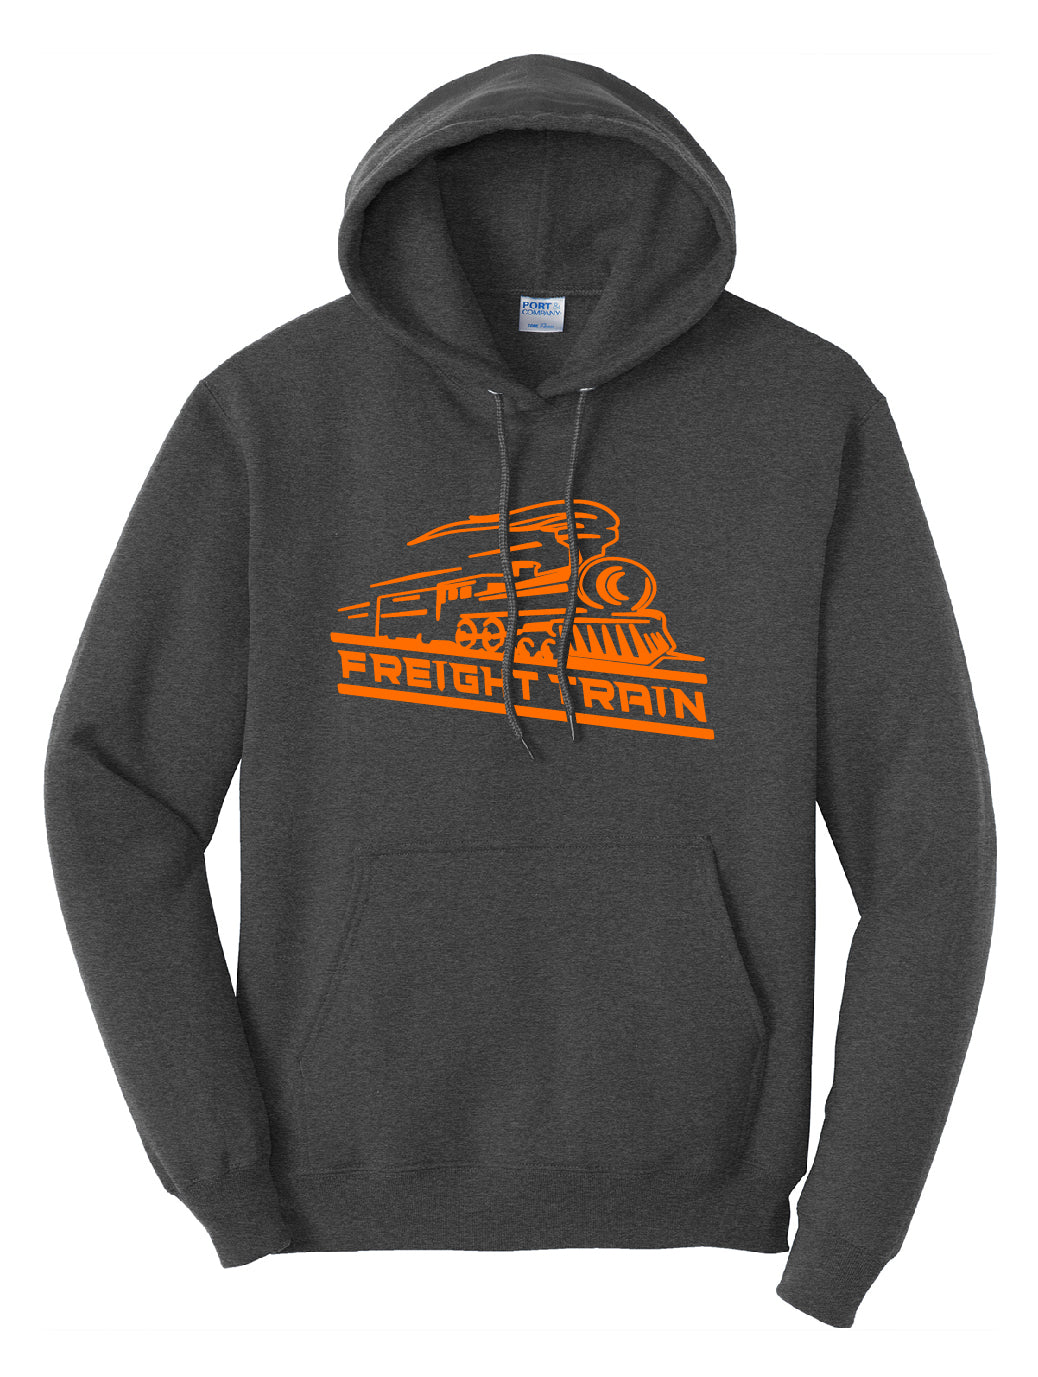 Freight Train - Hoodie